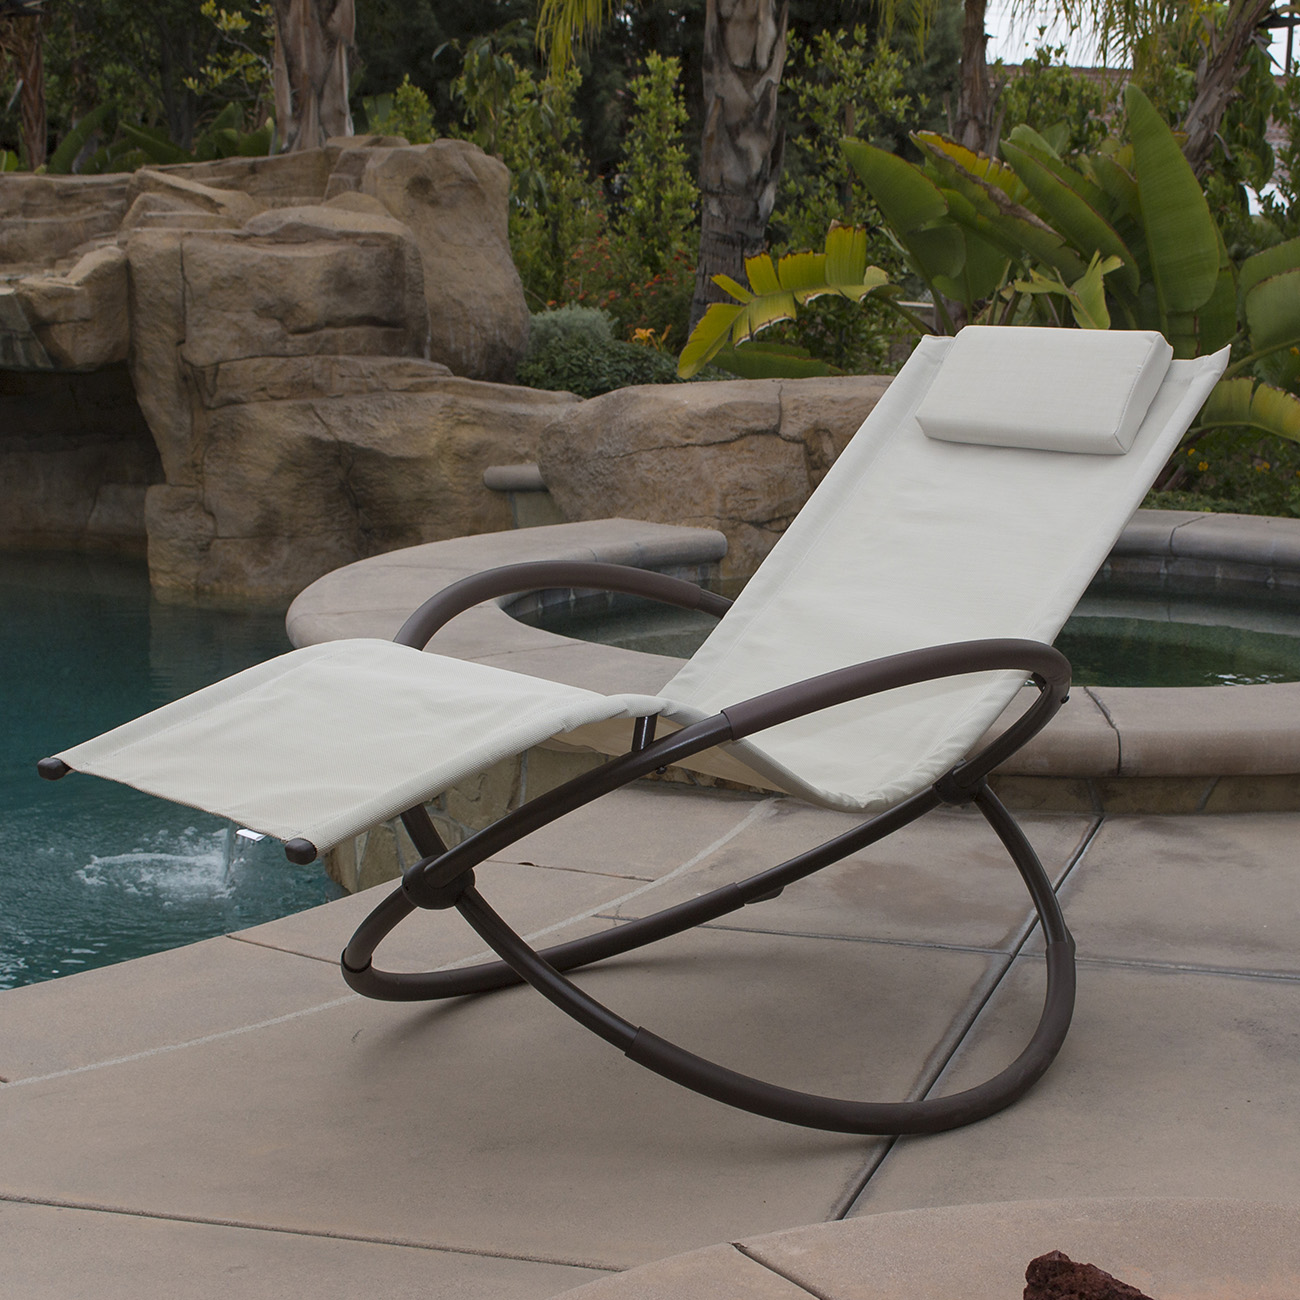 Commercial Bench Seating Pool Side Outdoor Kitchen: Orbital Folding Zero Gravity Lounge Chairs Outdoor Beach